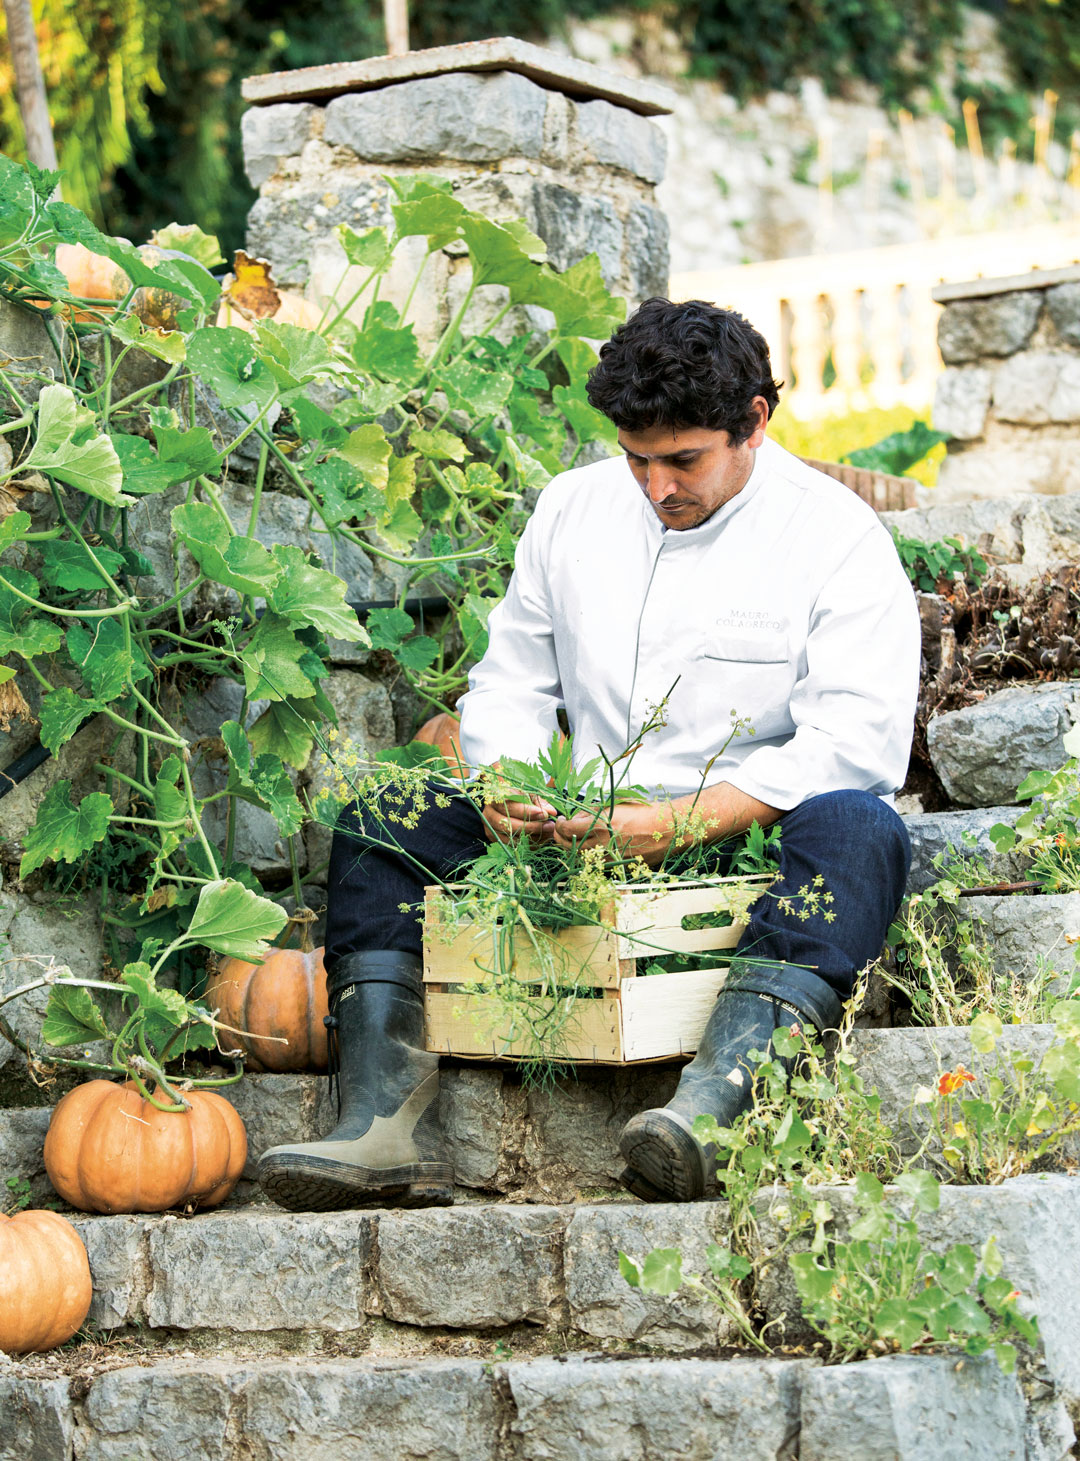 Want to garden like the world's best chef? Then break the rules